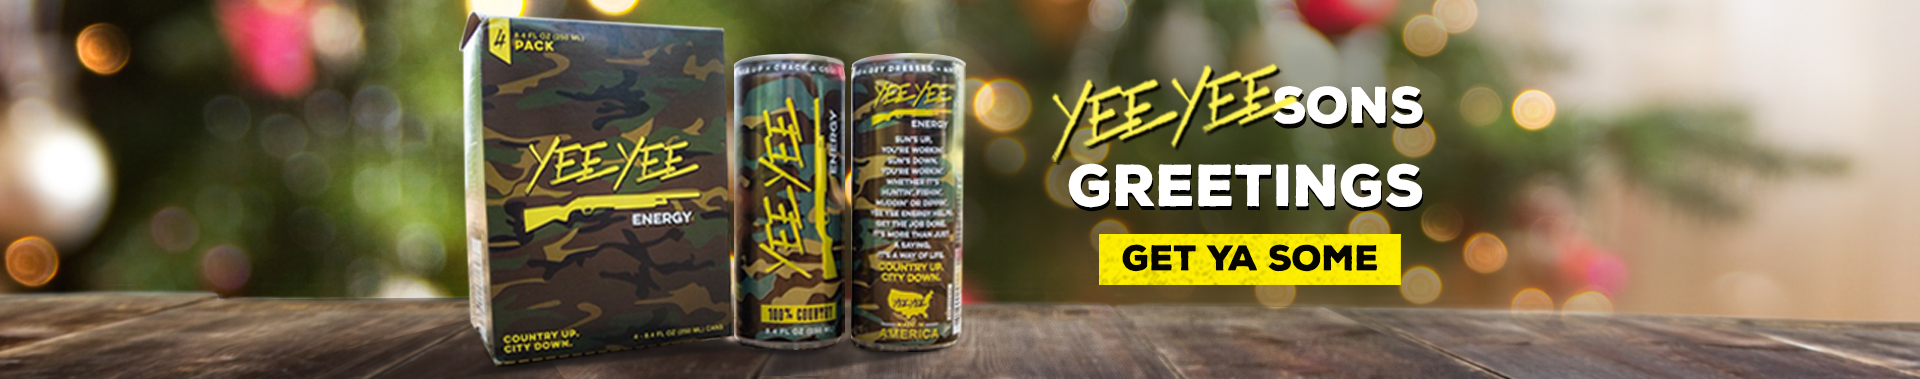 Yee Yee-sons Greetings